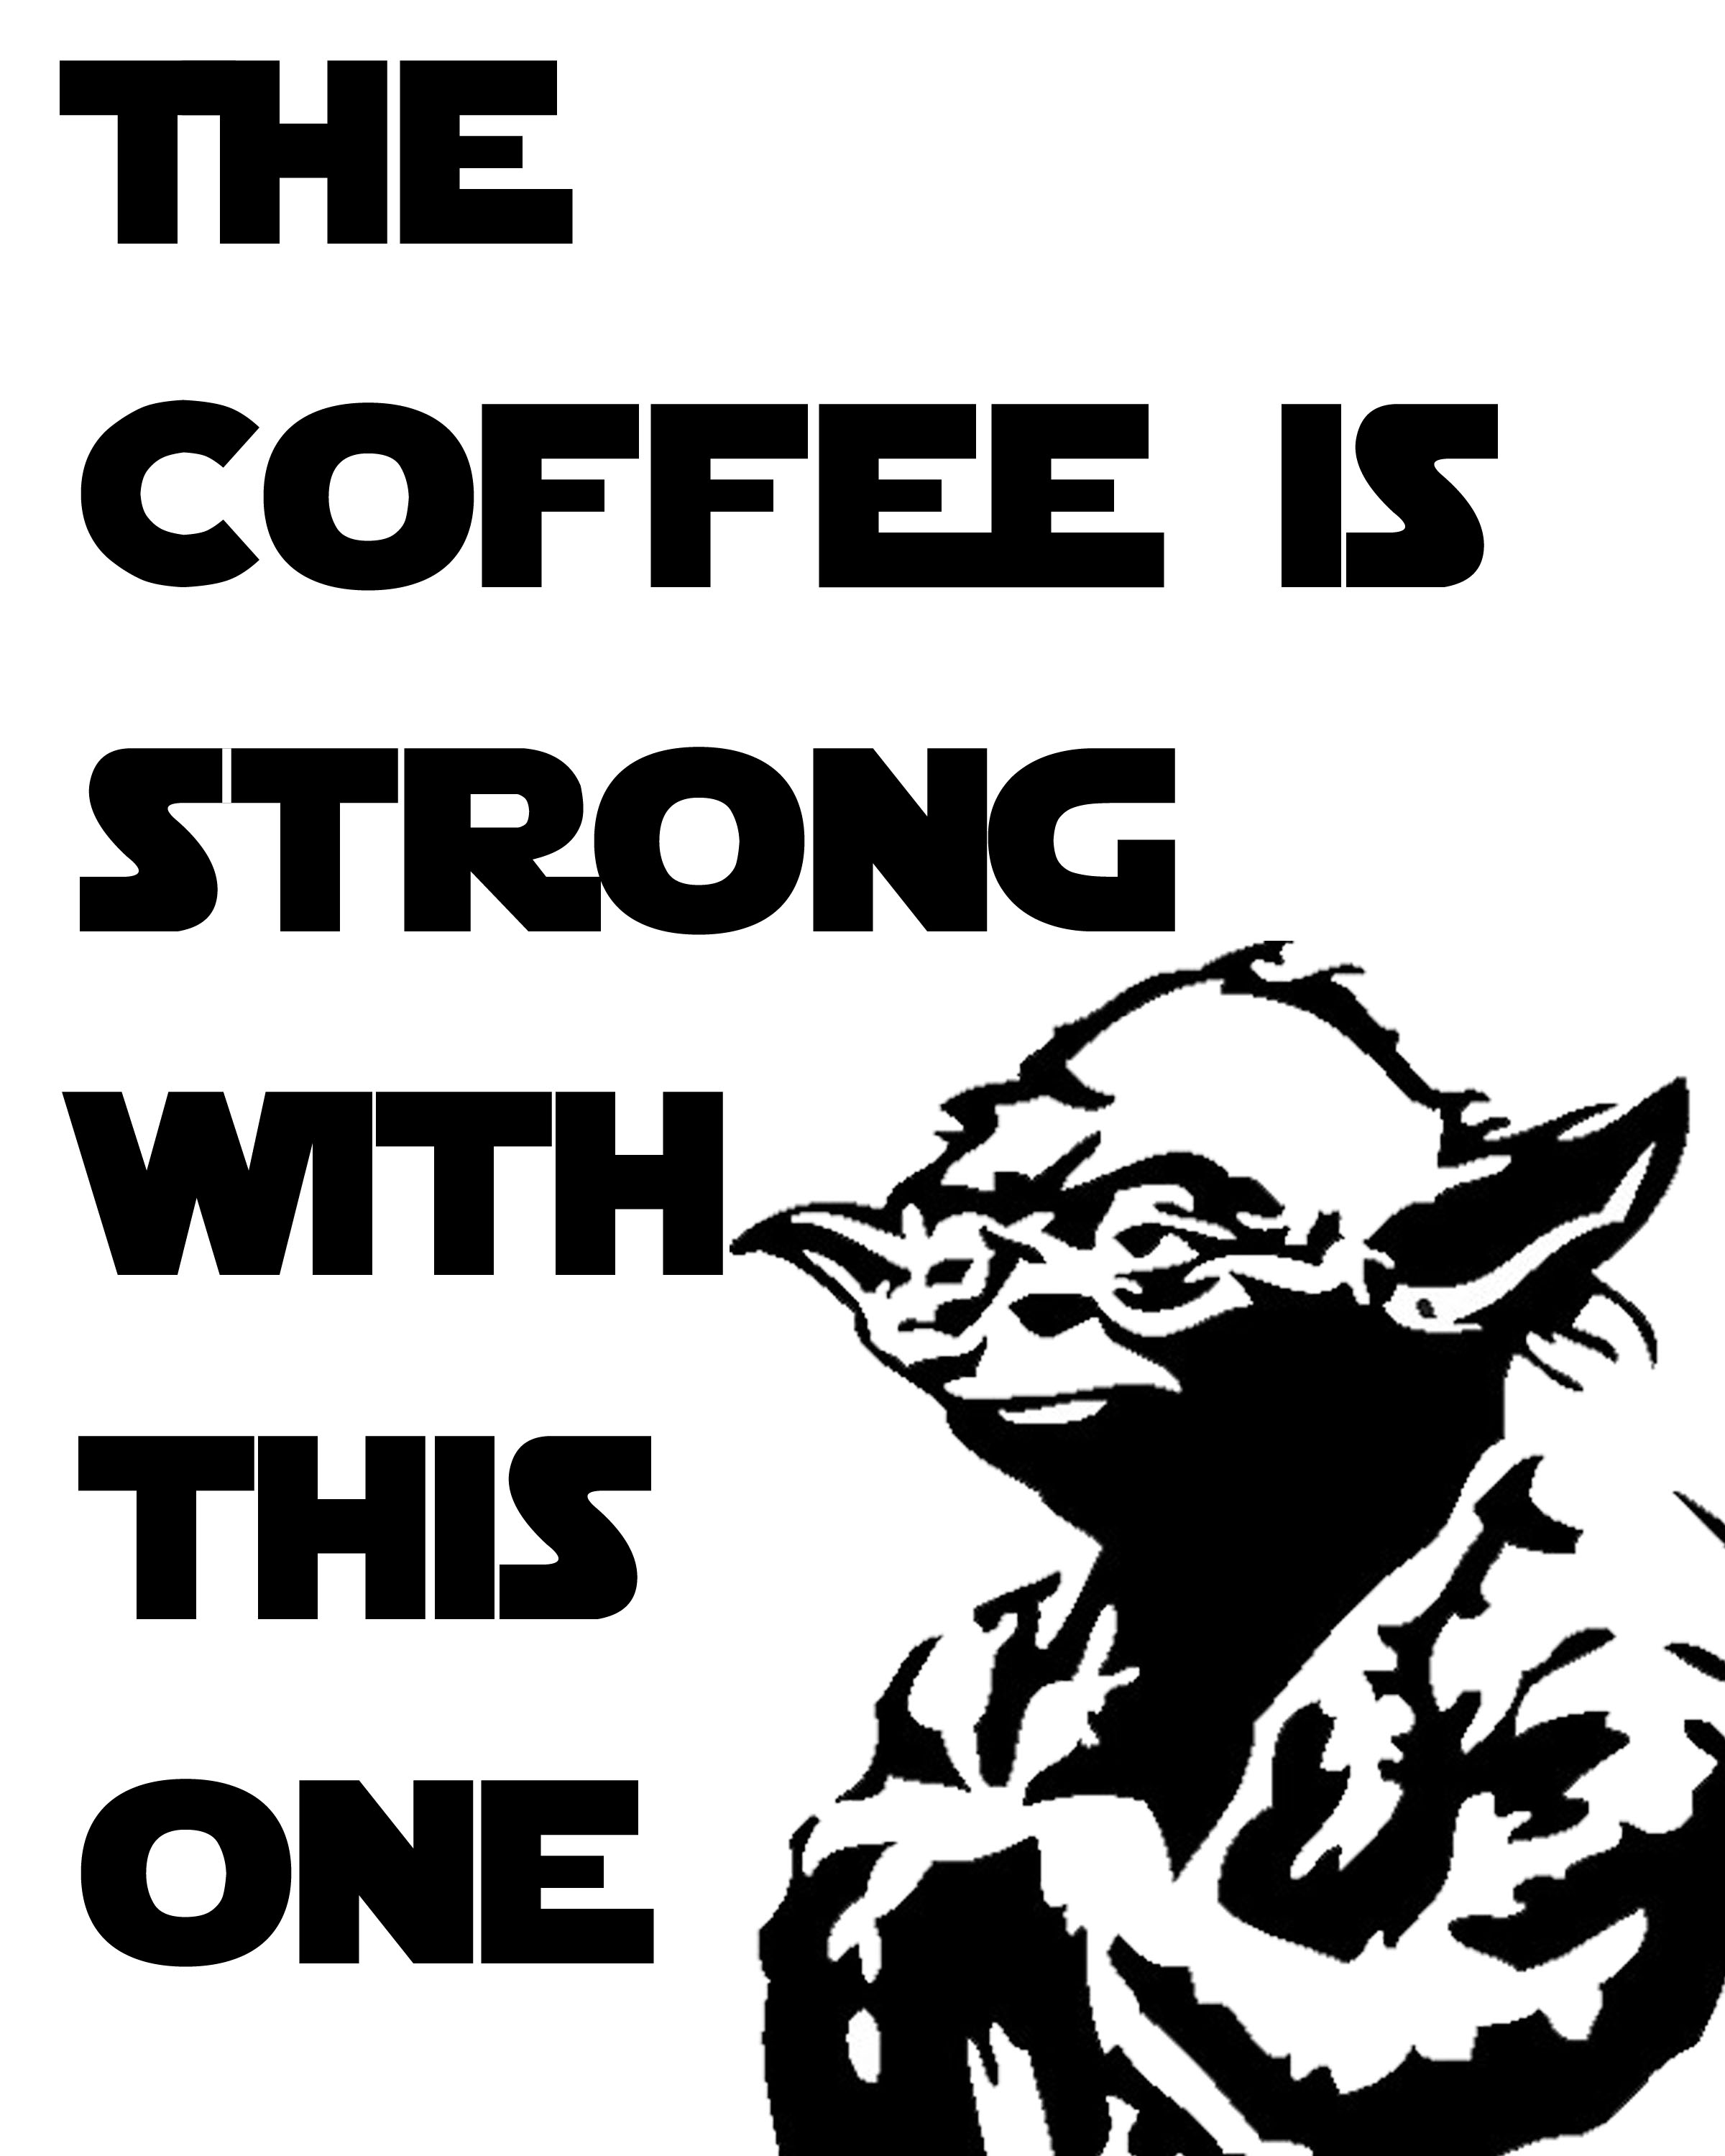 image relating to Printable Star Wars Images known as Absolutely free Star Wars Printables with a Espresso Topic! - Some of